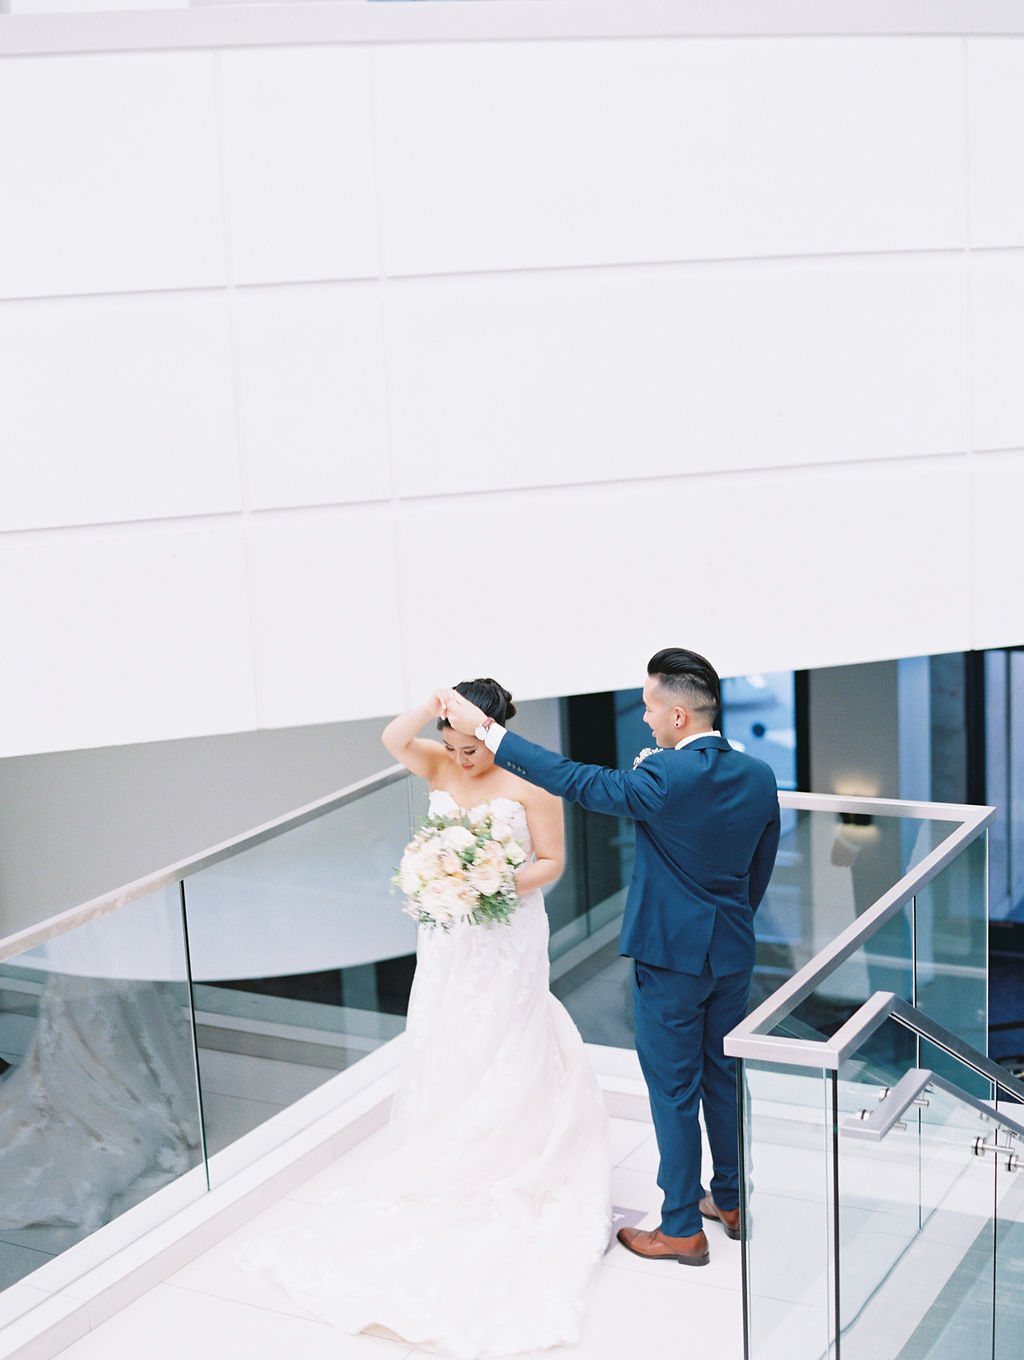 JennySoiPhotography-S&SSFAirportWeddingBrideandGroom-141.jpgSan Francisco Fairmont Hotel Wedding Fine Art Film Wedding Photographer